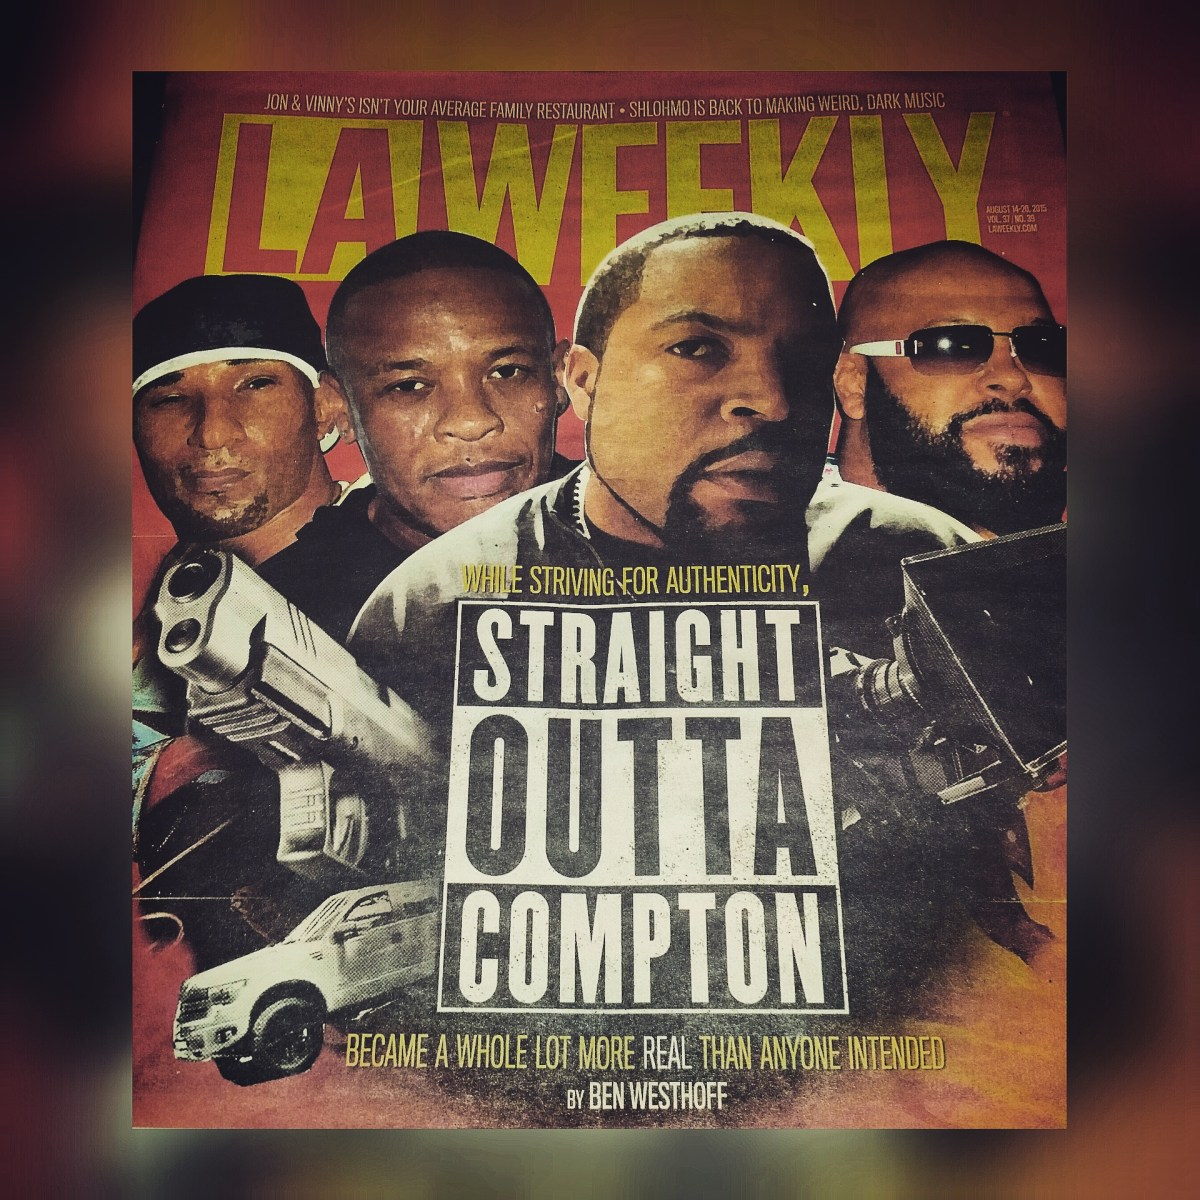 Straight outta compton tomica woods wright red carpet premiere - La Weekly On Straight Outta Compton